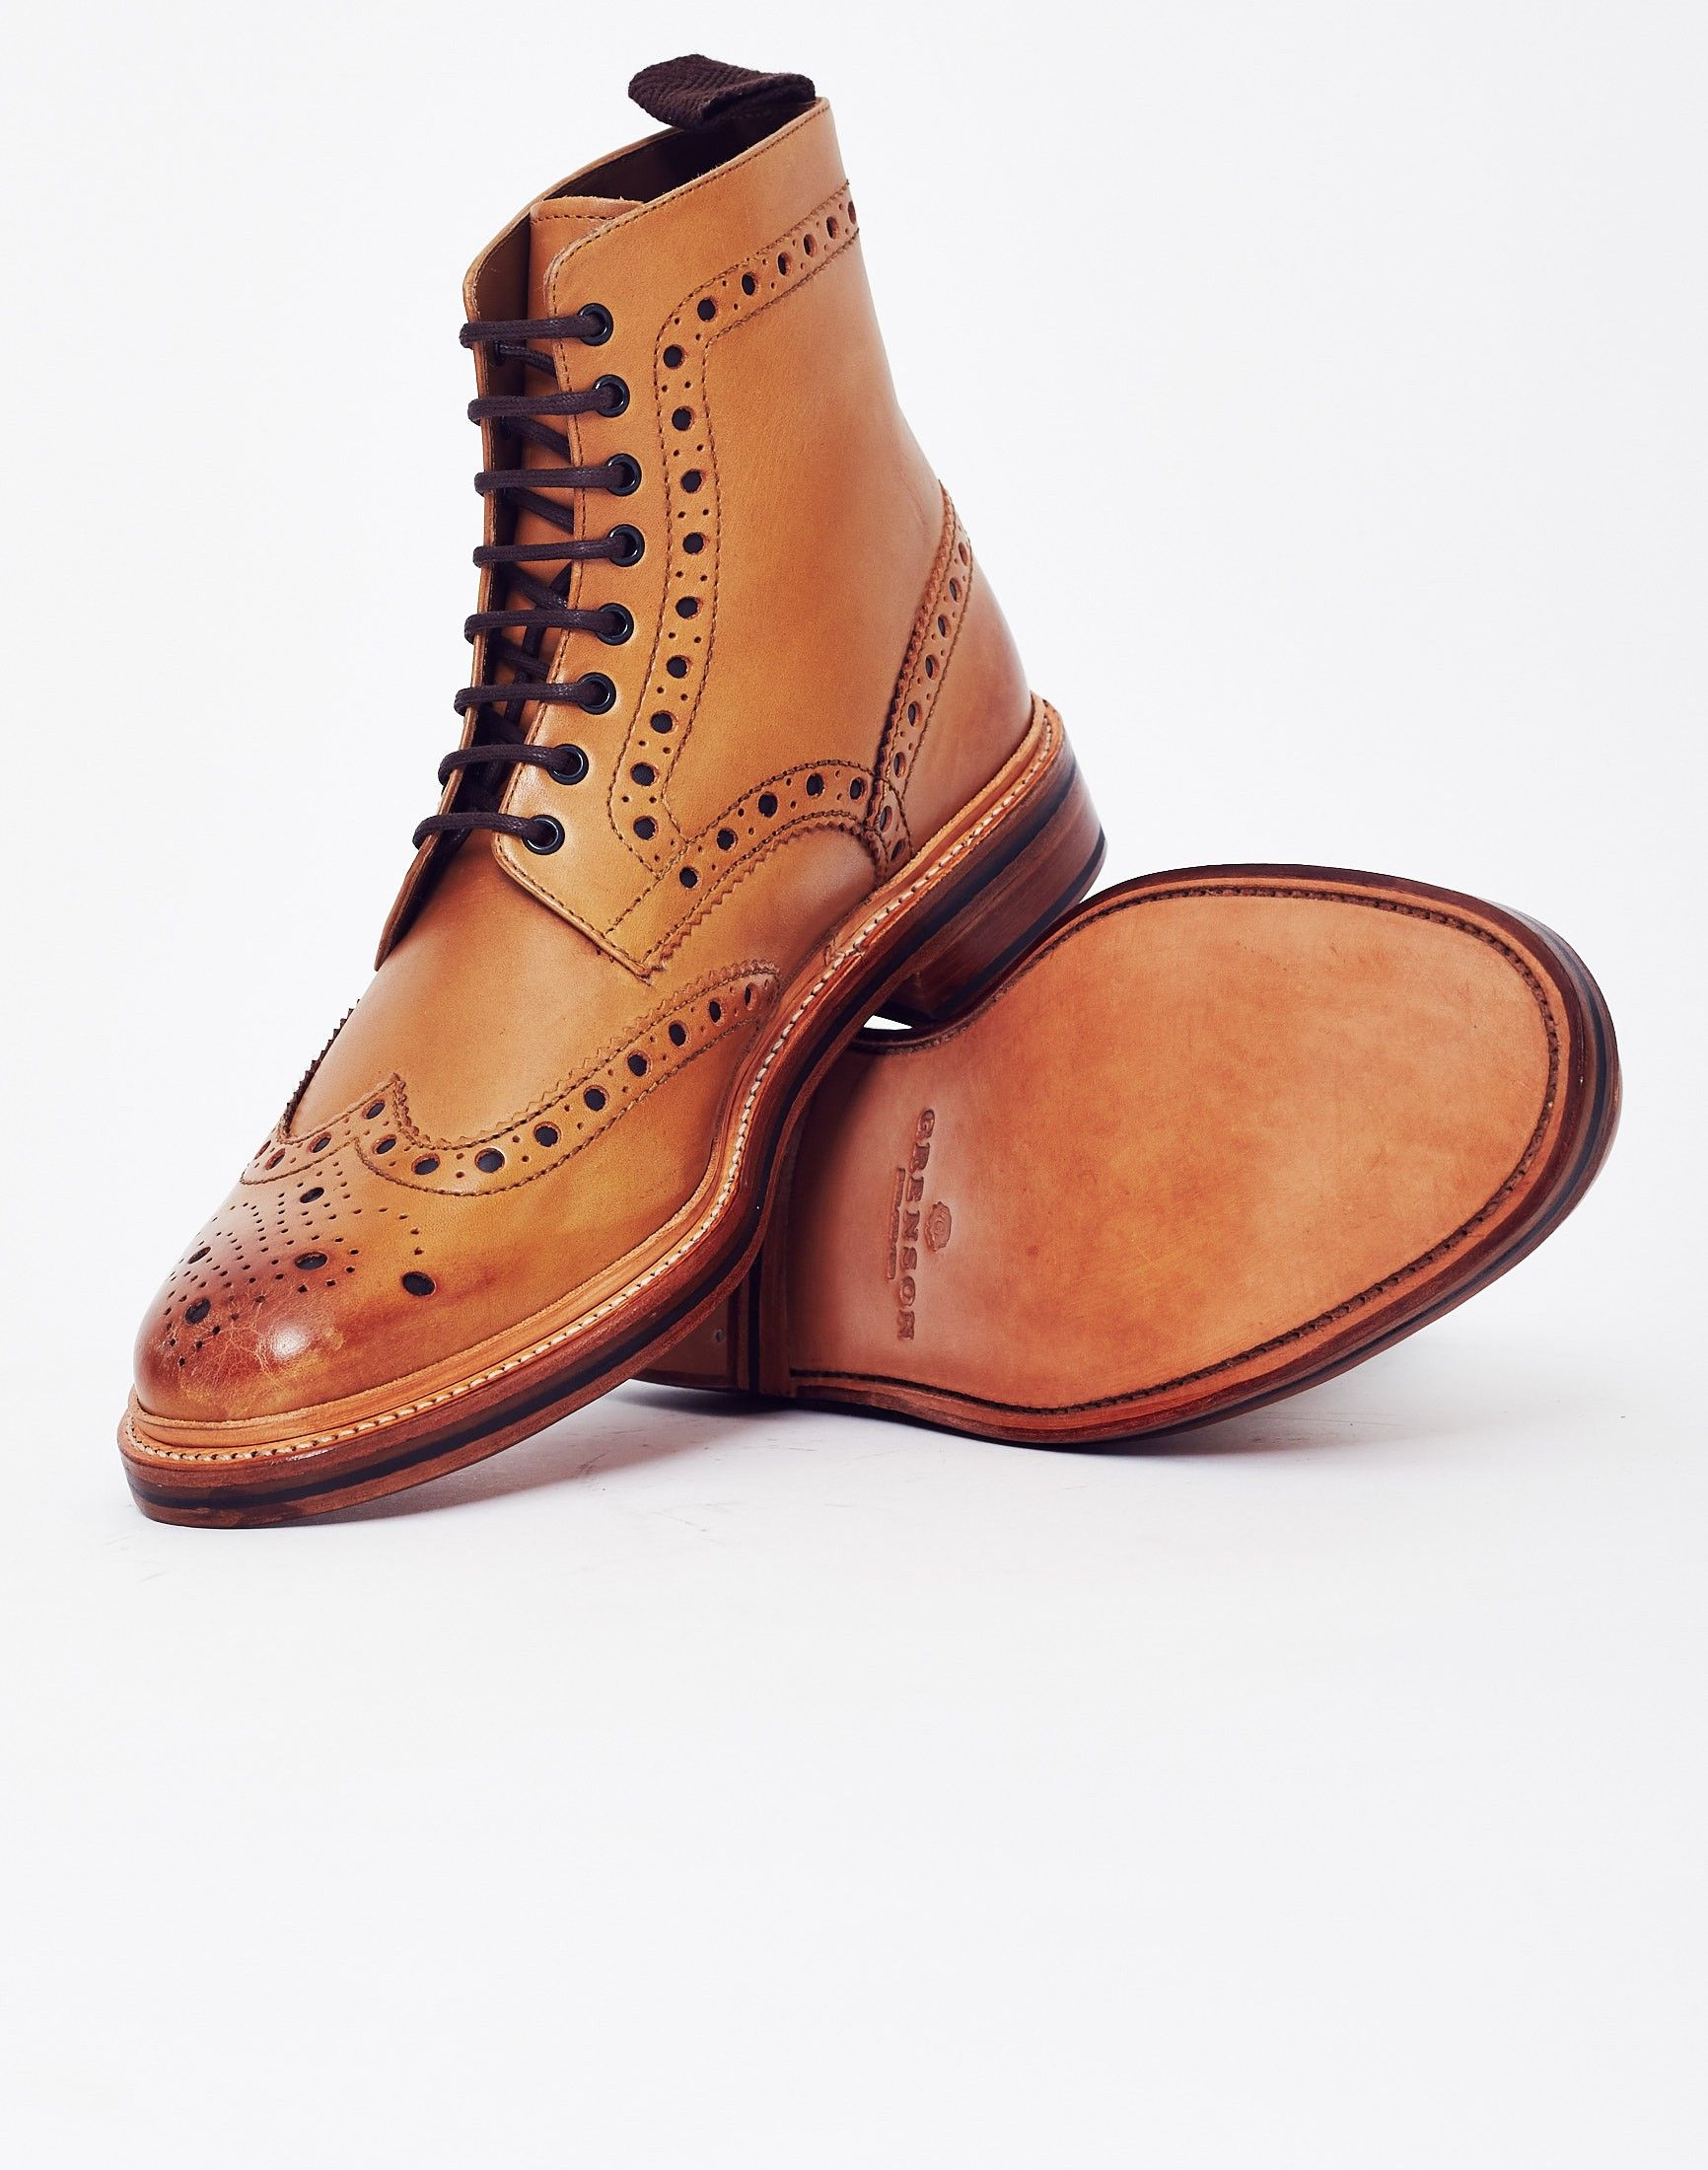 9eb8ad35d3b Grenson Fred Leather Brogue Boot Tan | Shoes | Dress with boots ...